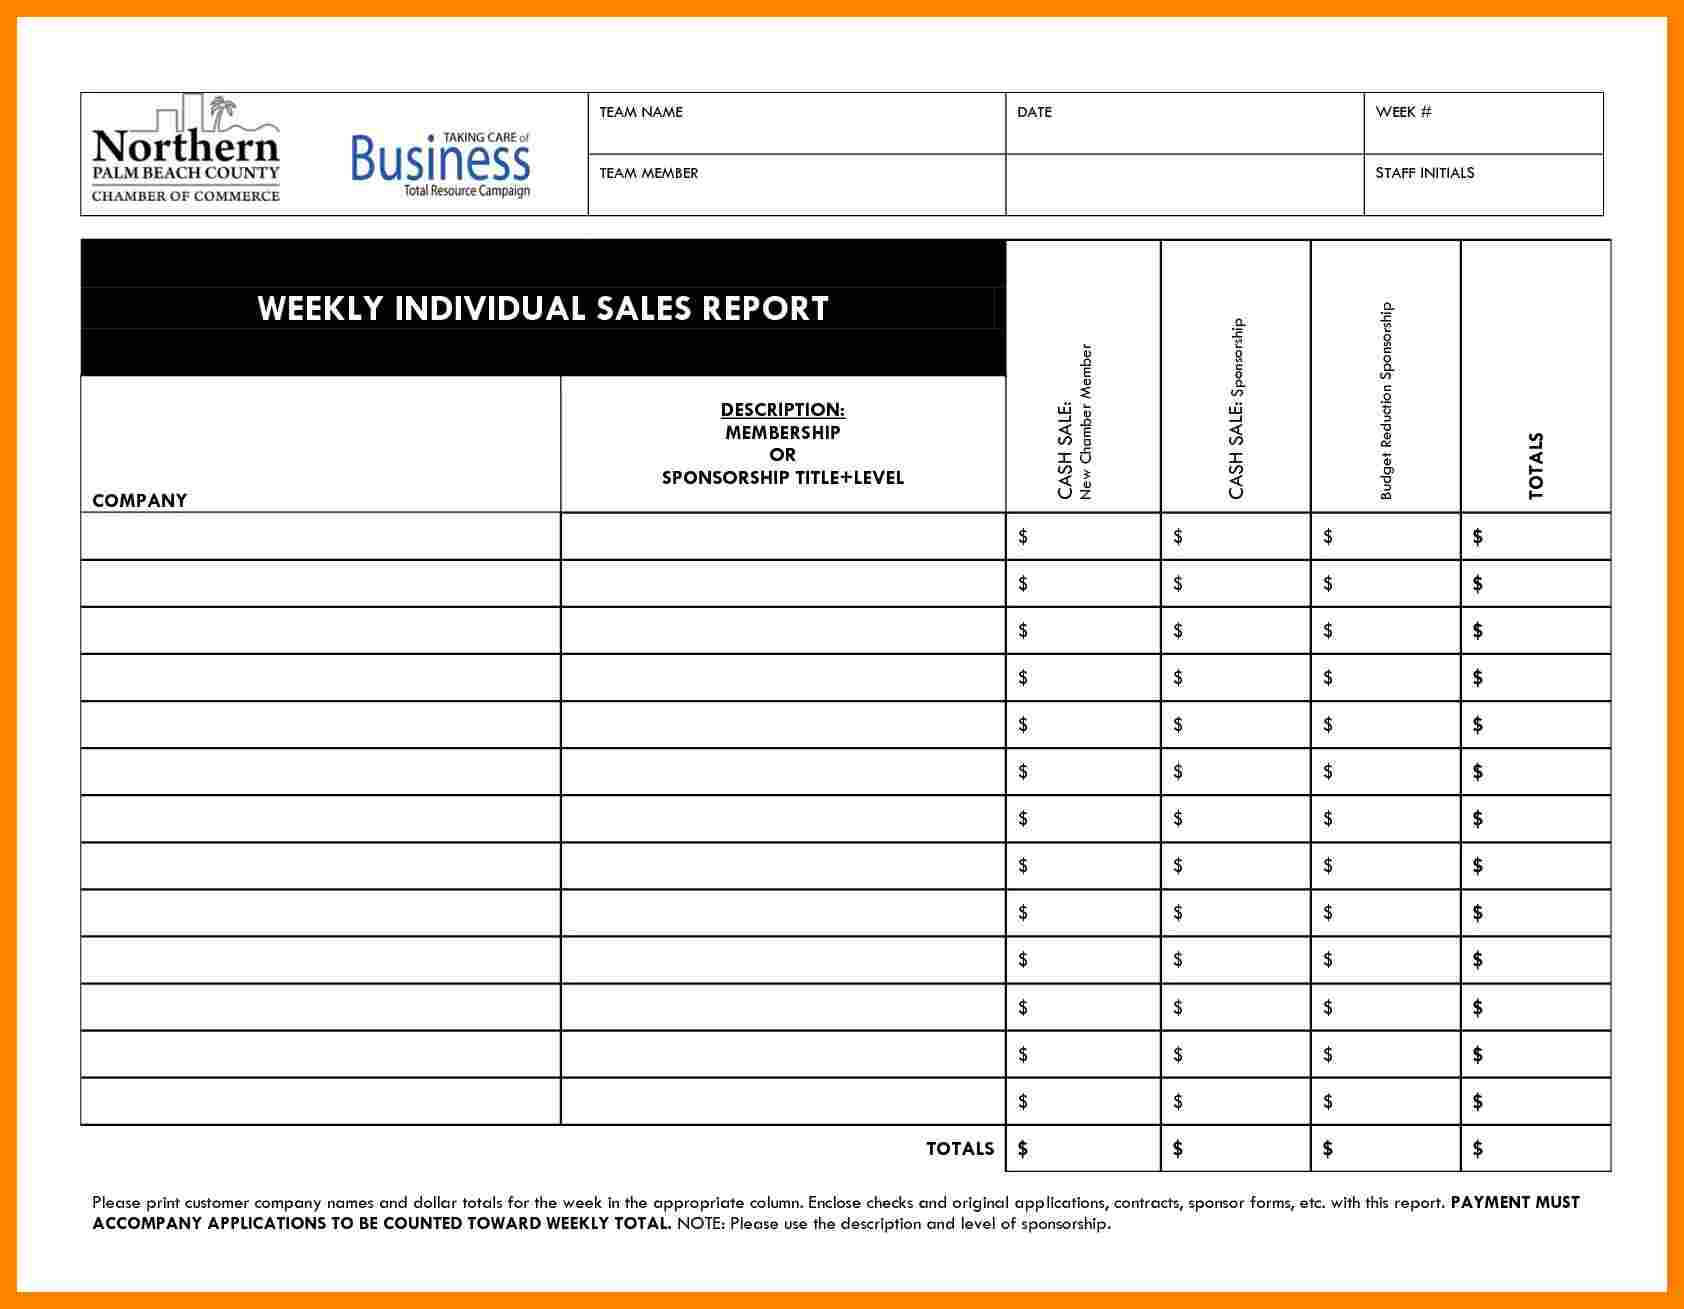 010 Daily Activity Report Template Free Download Salesll Within Sales Call Report Template Free